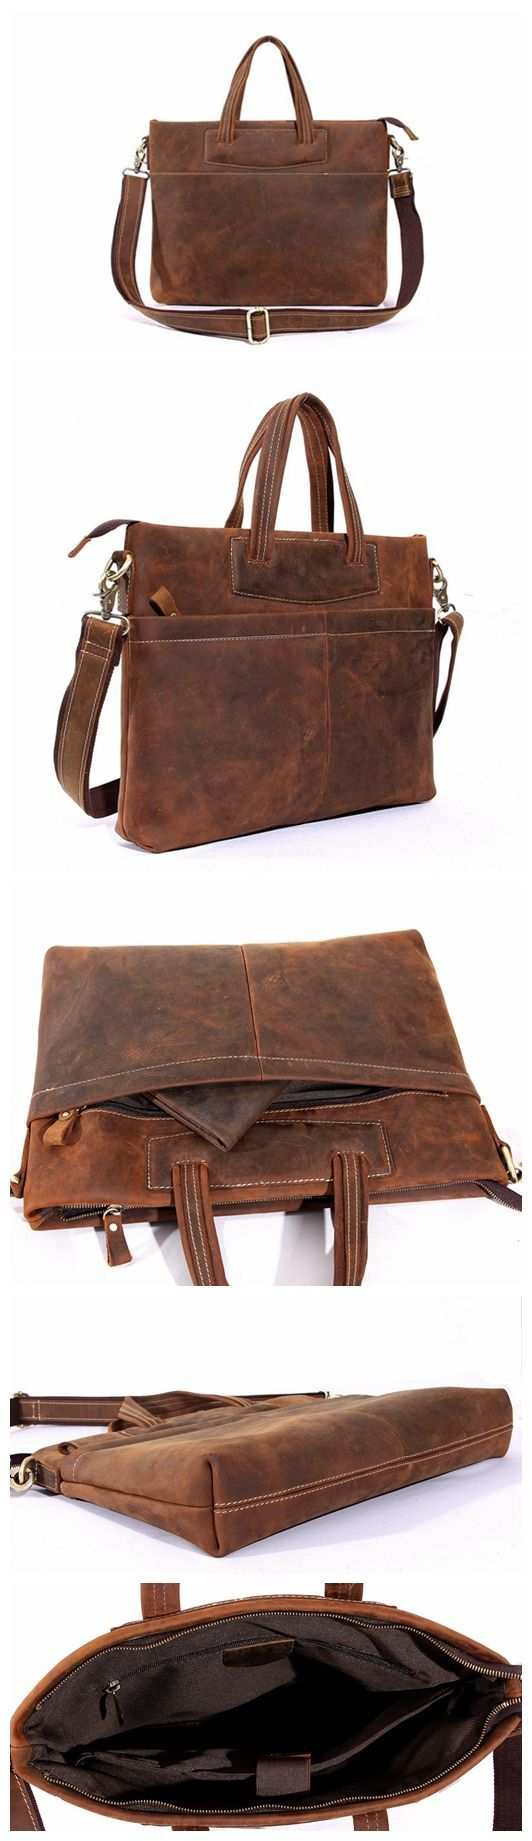 Vintage Handmade Top Grain Leather Mens Handbag Laptop Briefcase Messenger Shoulder Bag